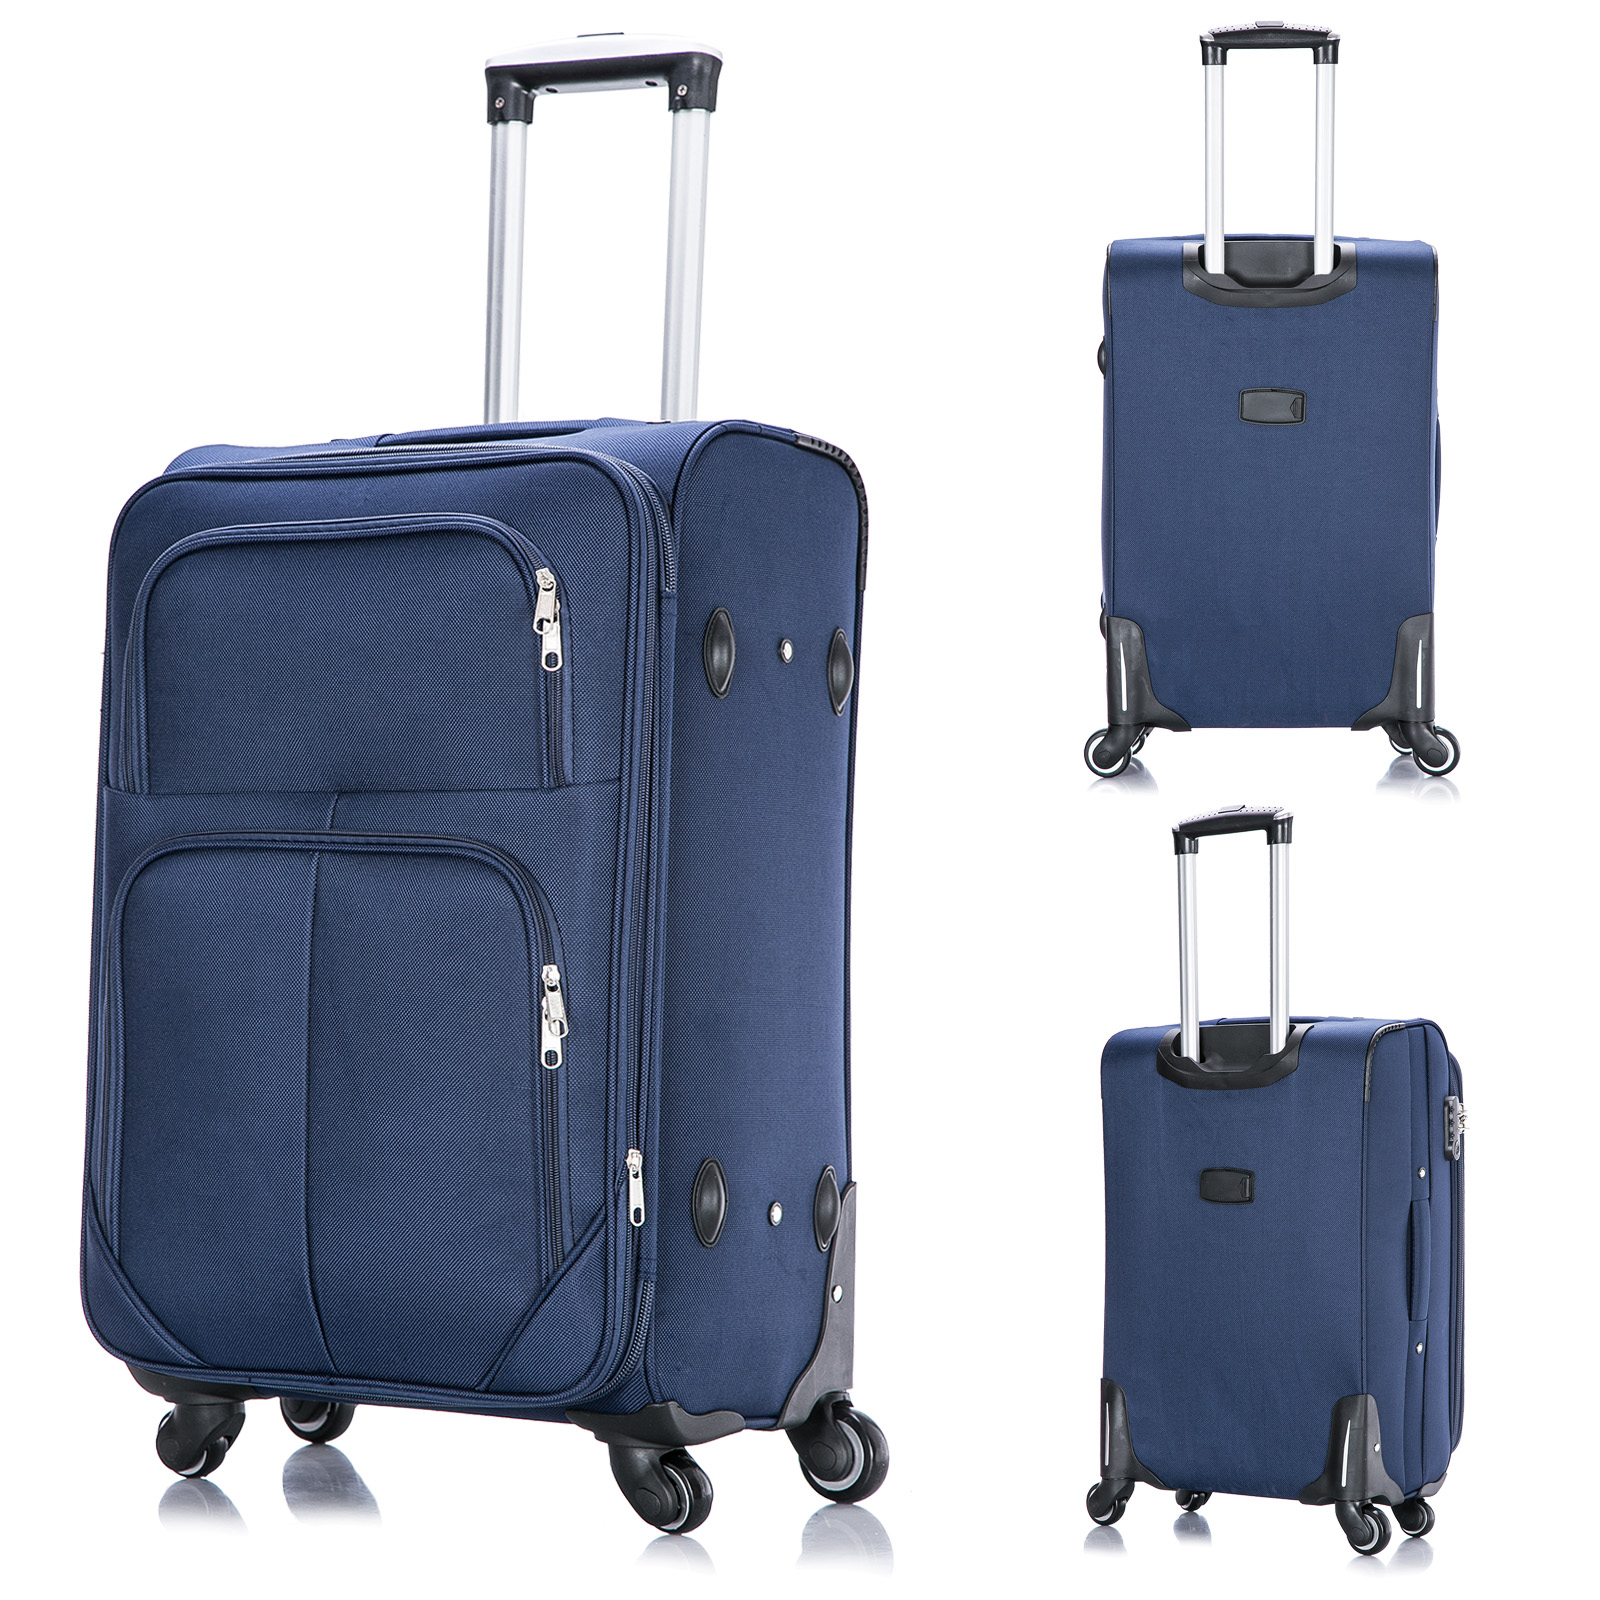 reisekoffer trolley stoff 4 rollen koffer weichgep ck gro blau xl rk4215bl xl ebay. Black Bedroom Furniture Sets. Home Design Ideas